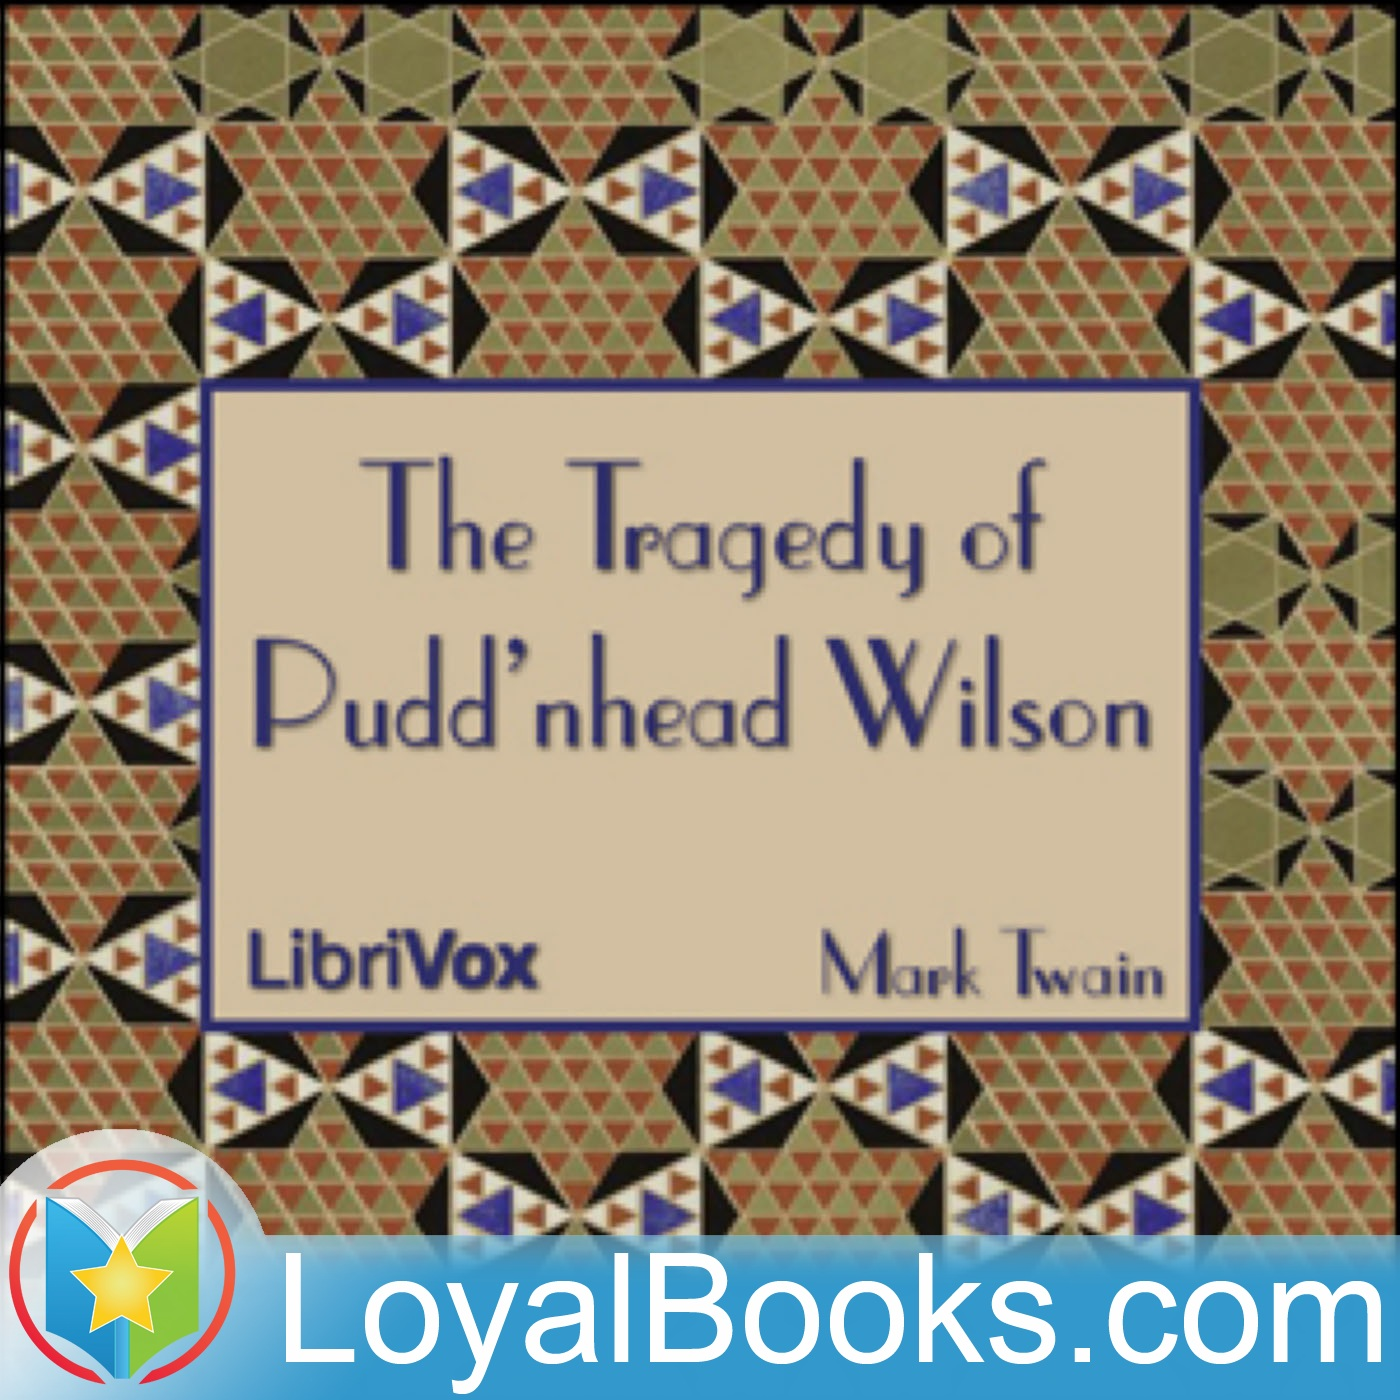 <![CDATA[The Tragedy of Pudd'nhead Wilson by Mark Twain]]>